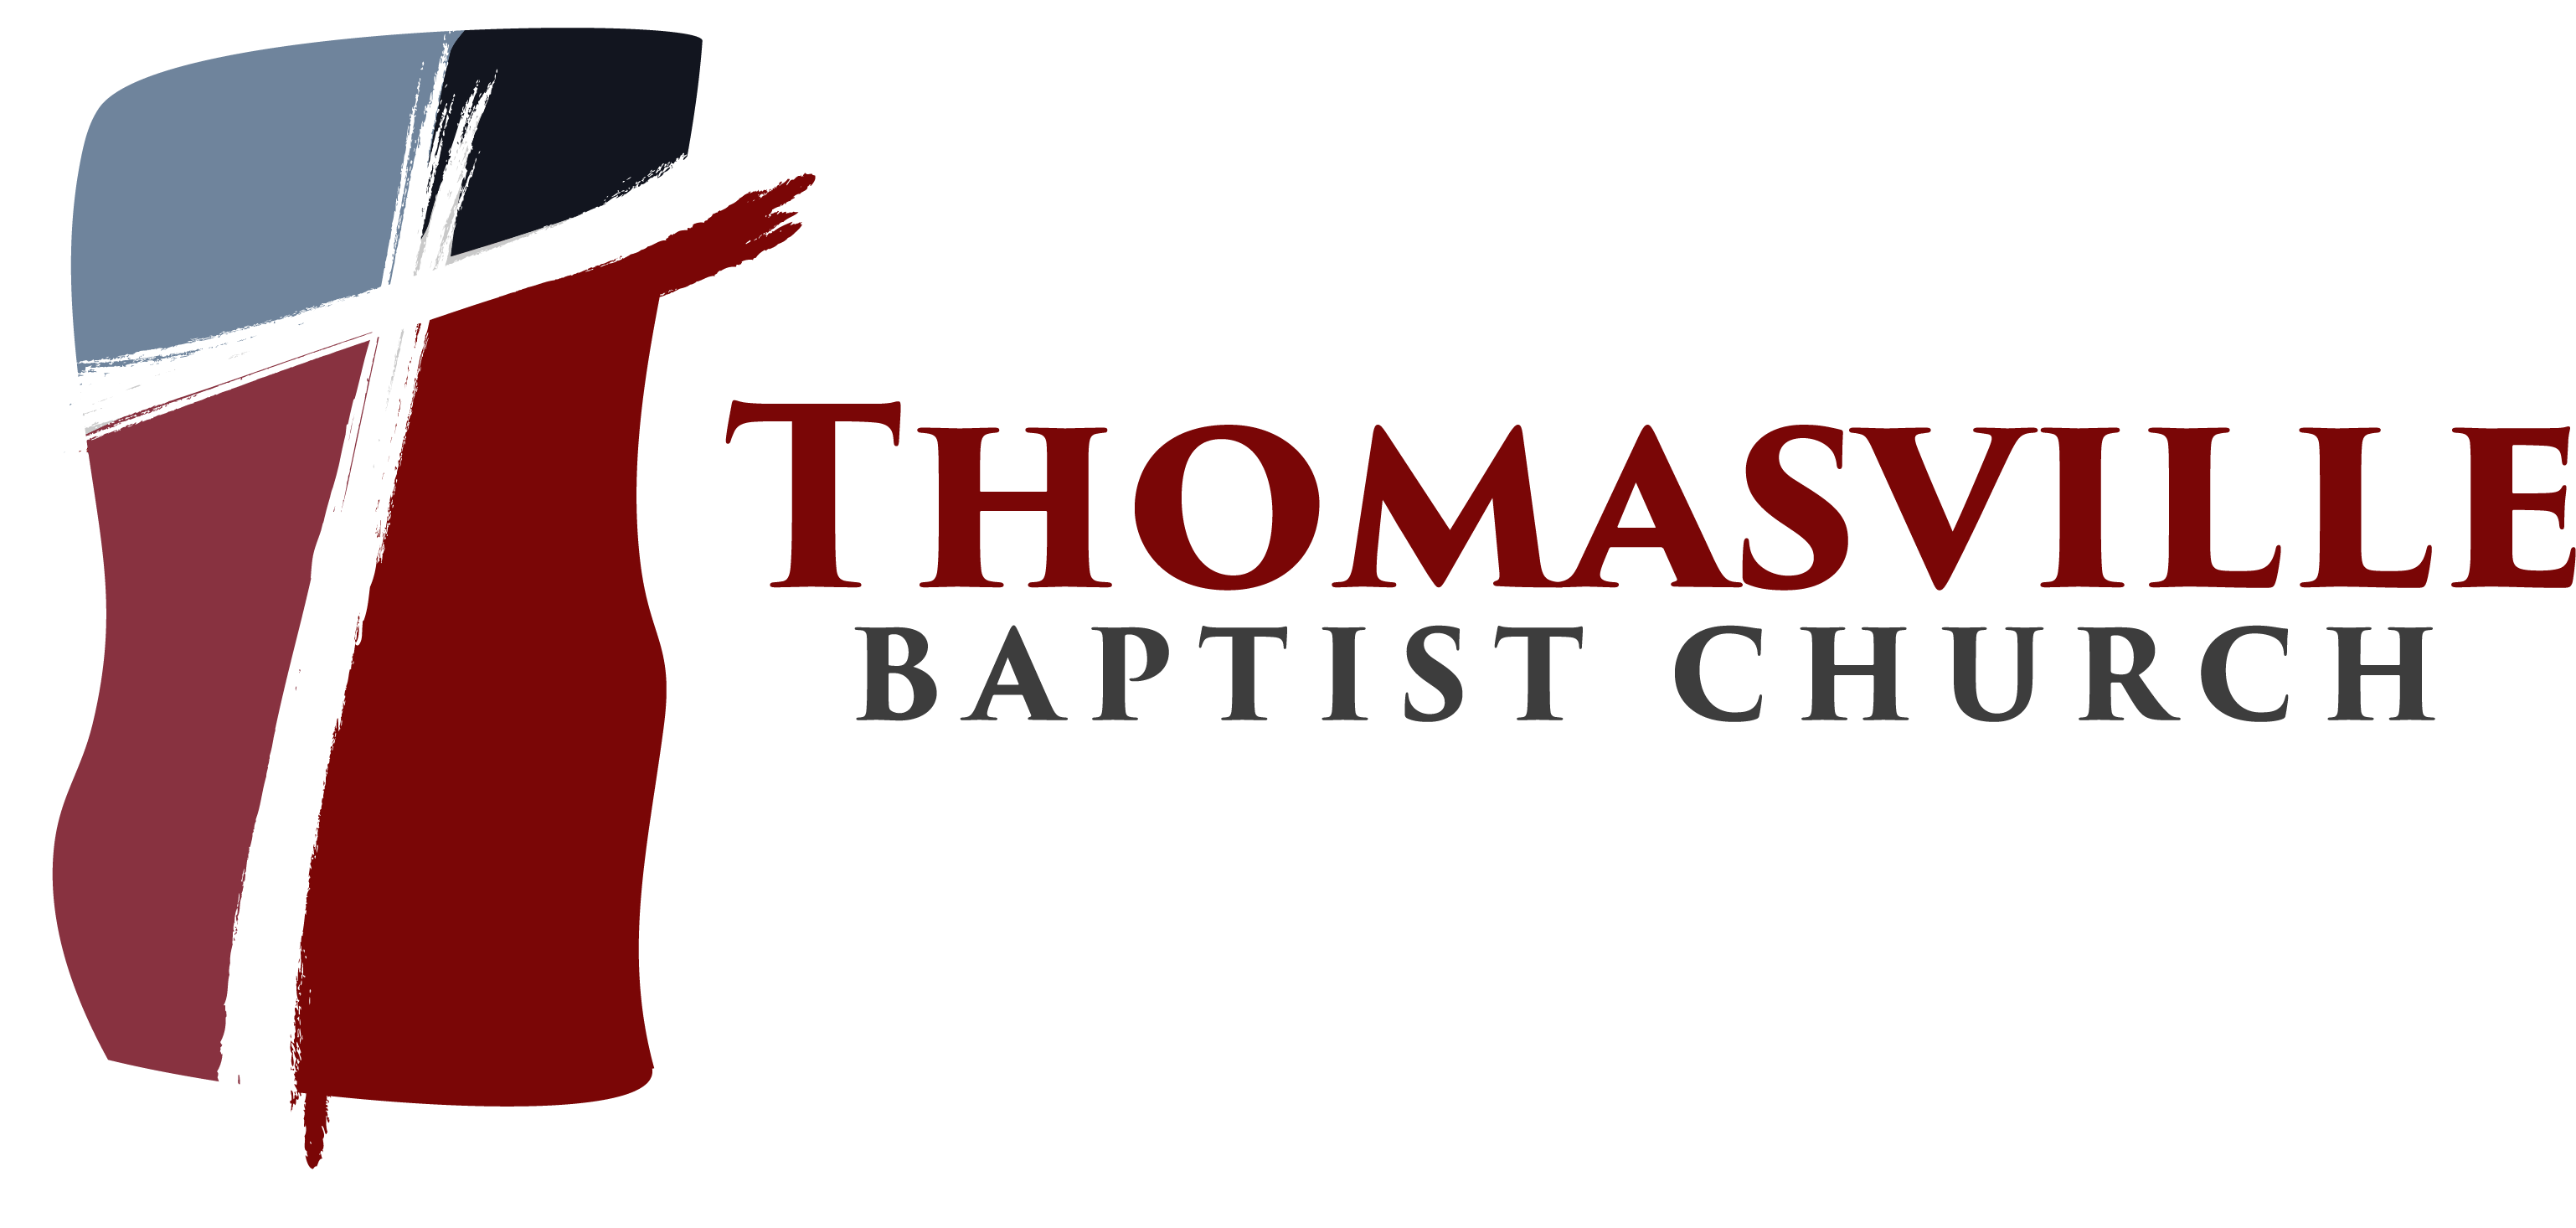 Thomasville Baptist Church